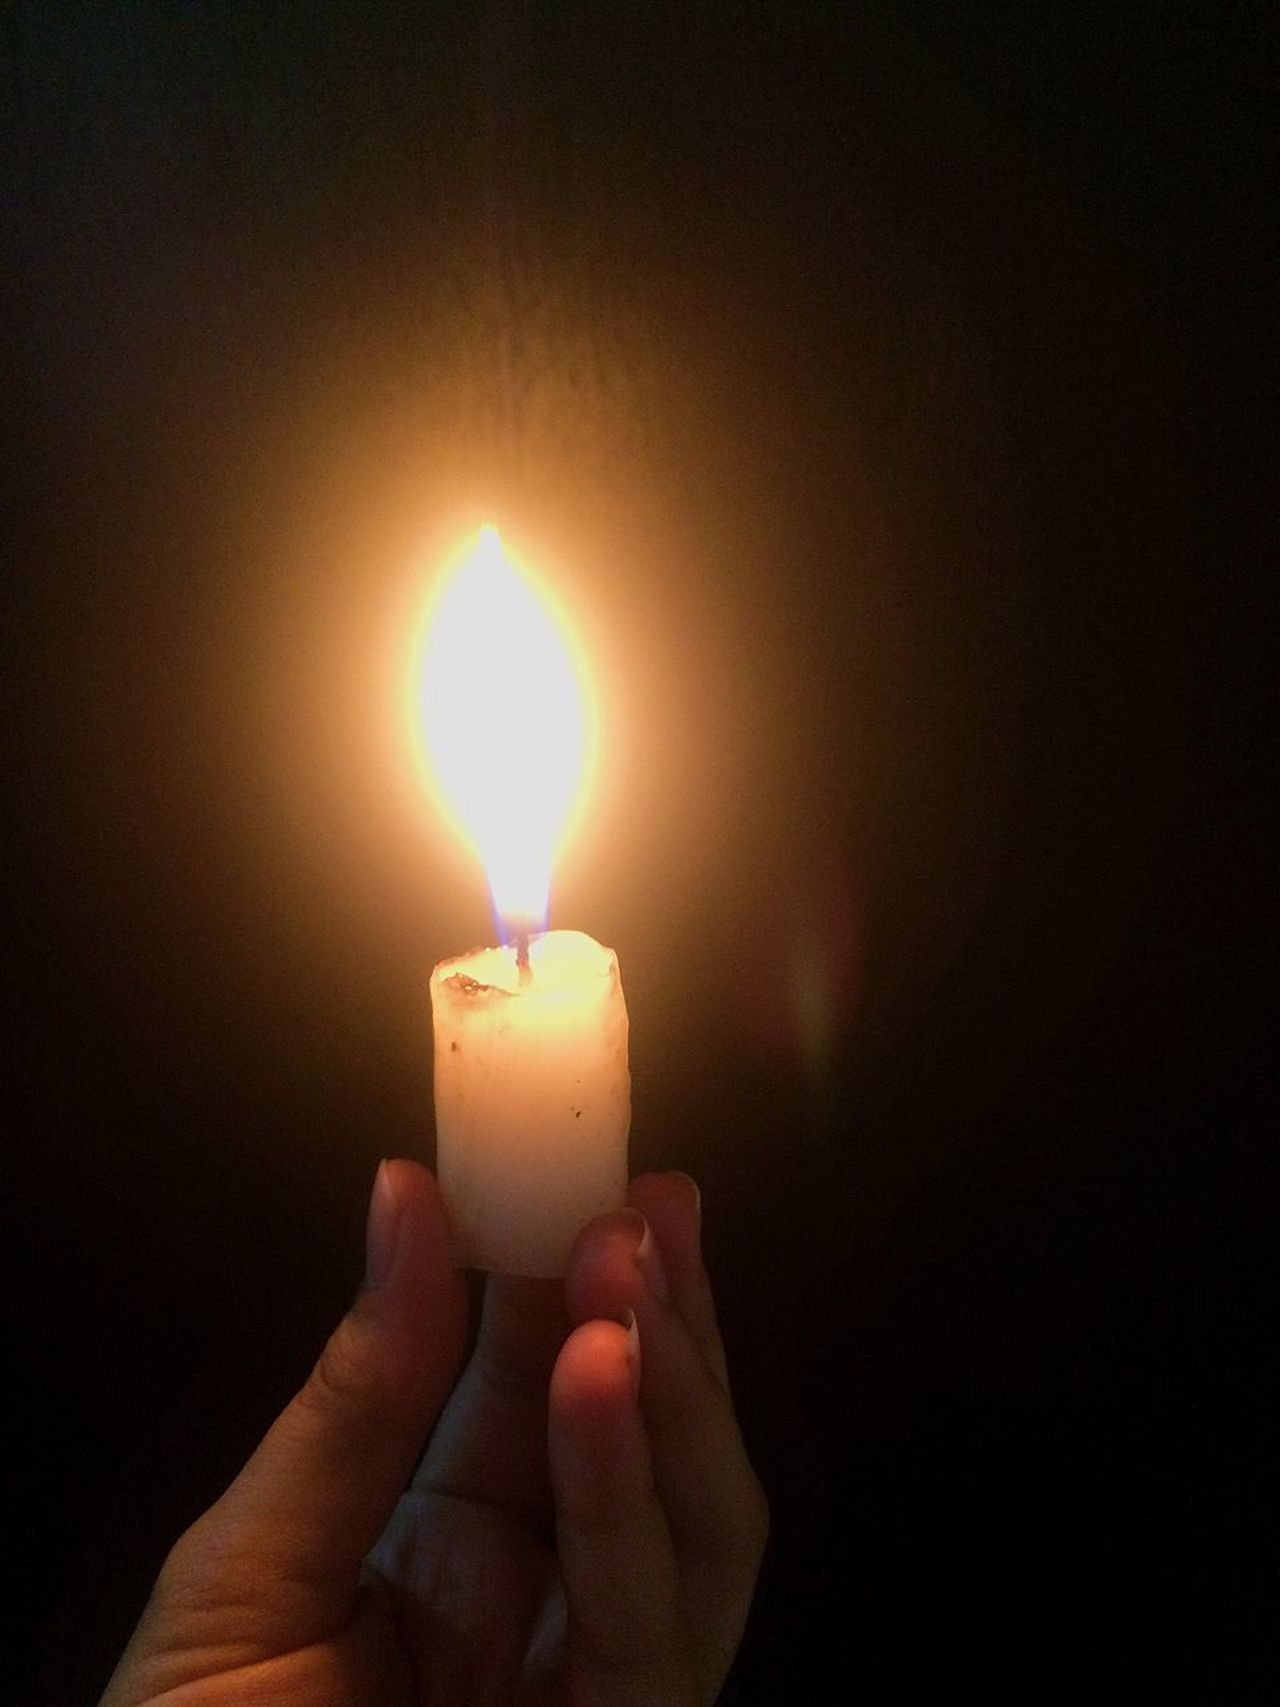 Candles.❤ Diya - Oil Lamp People Illuminated Oil Lamp Human Hand Candle Night Candles Candle Real People